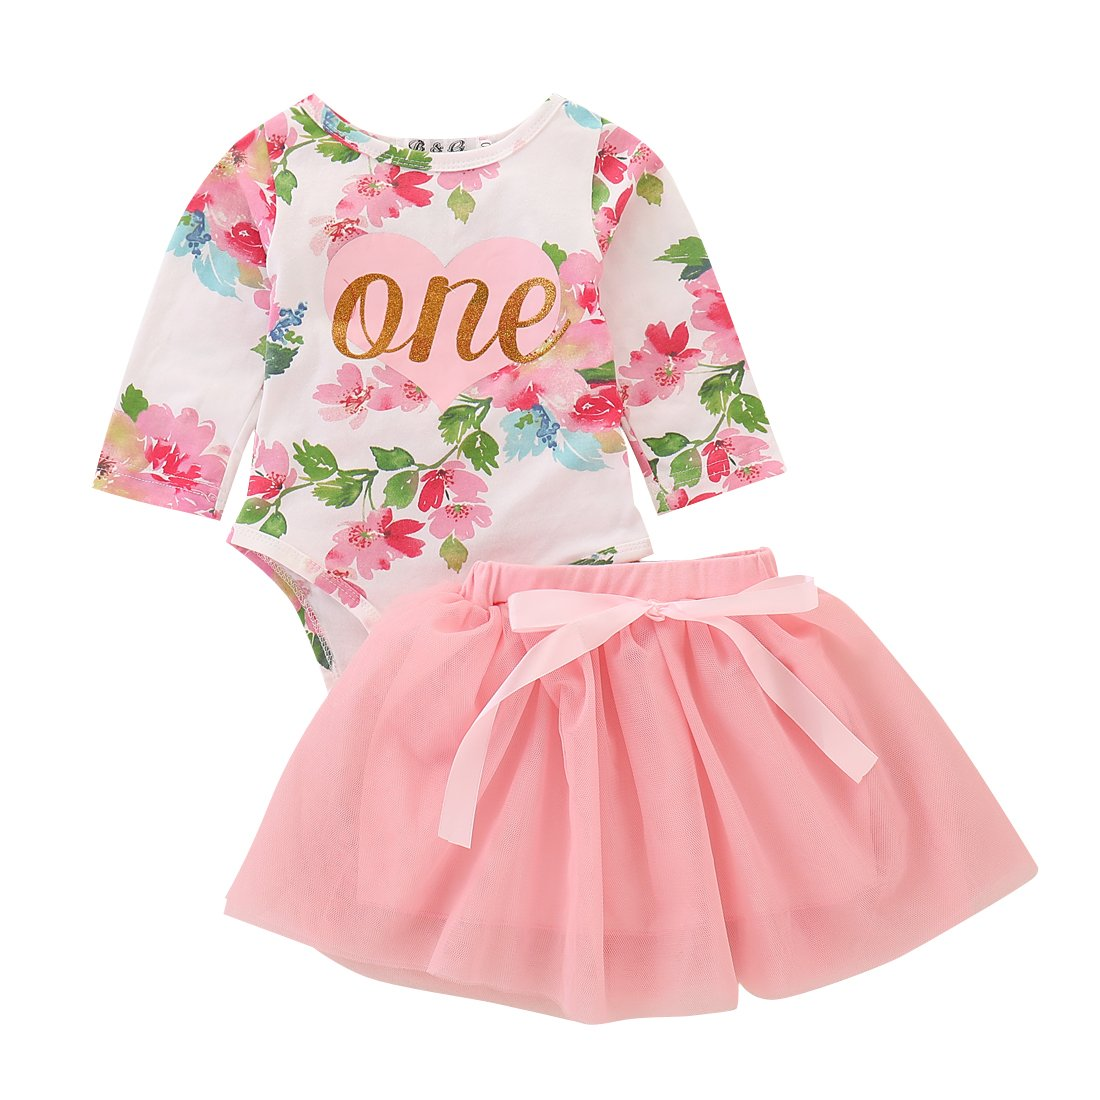 2Pcs Set Baby Girls' 1st Birthday Tutu Clothes Outfit Dress Long Sleeve Floral Romper Top+ Lace Skirt (Pink#2, 18-24 Months)